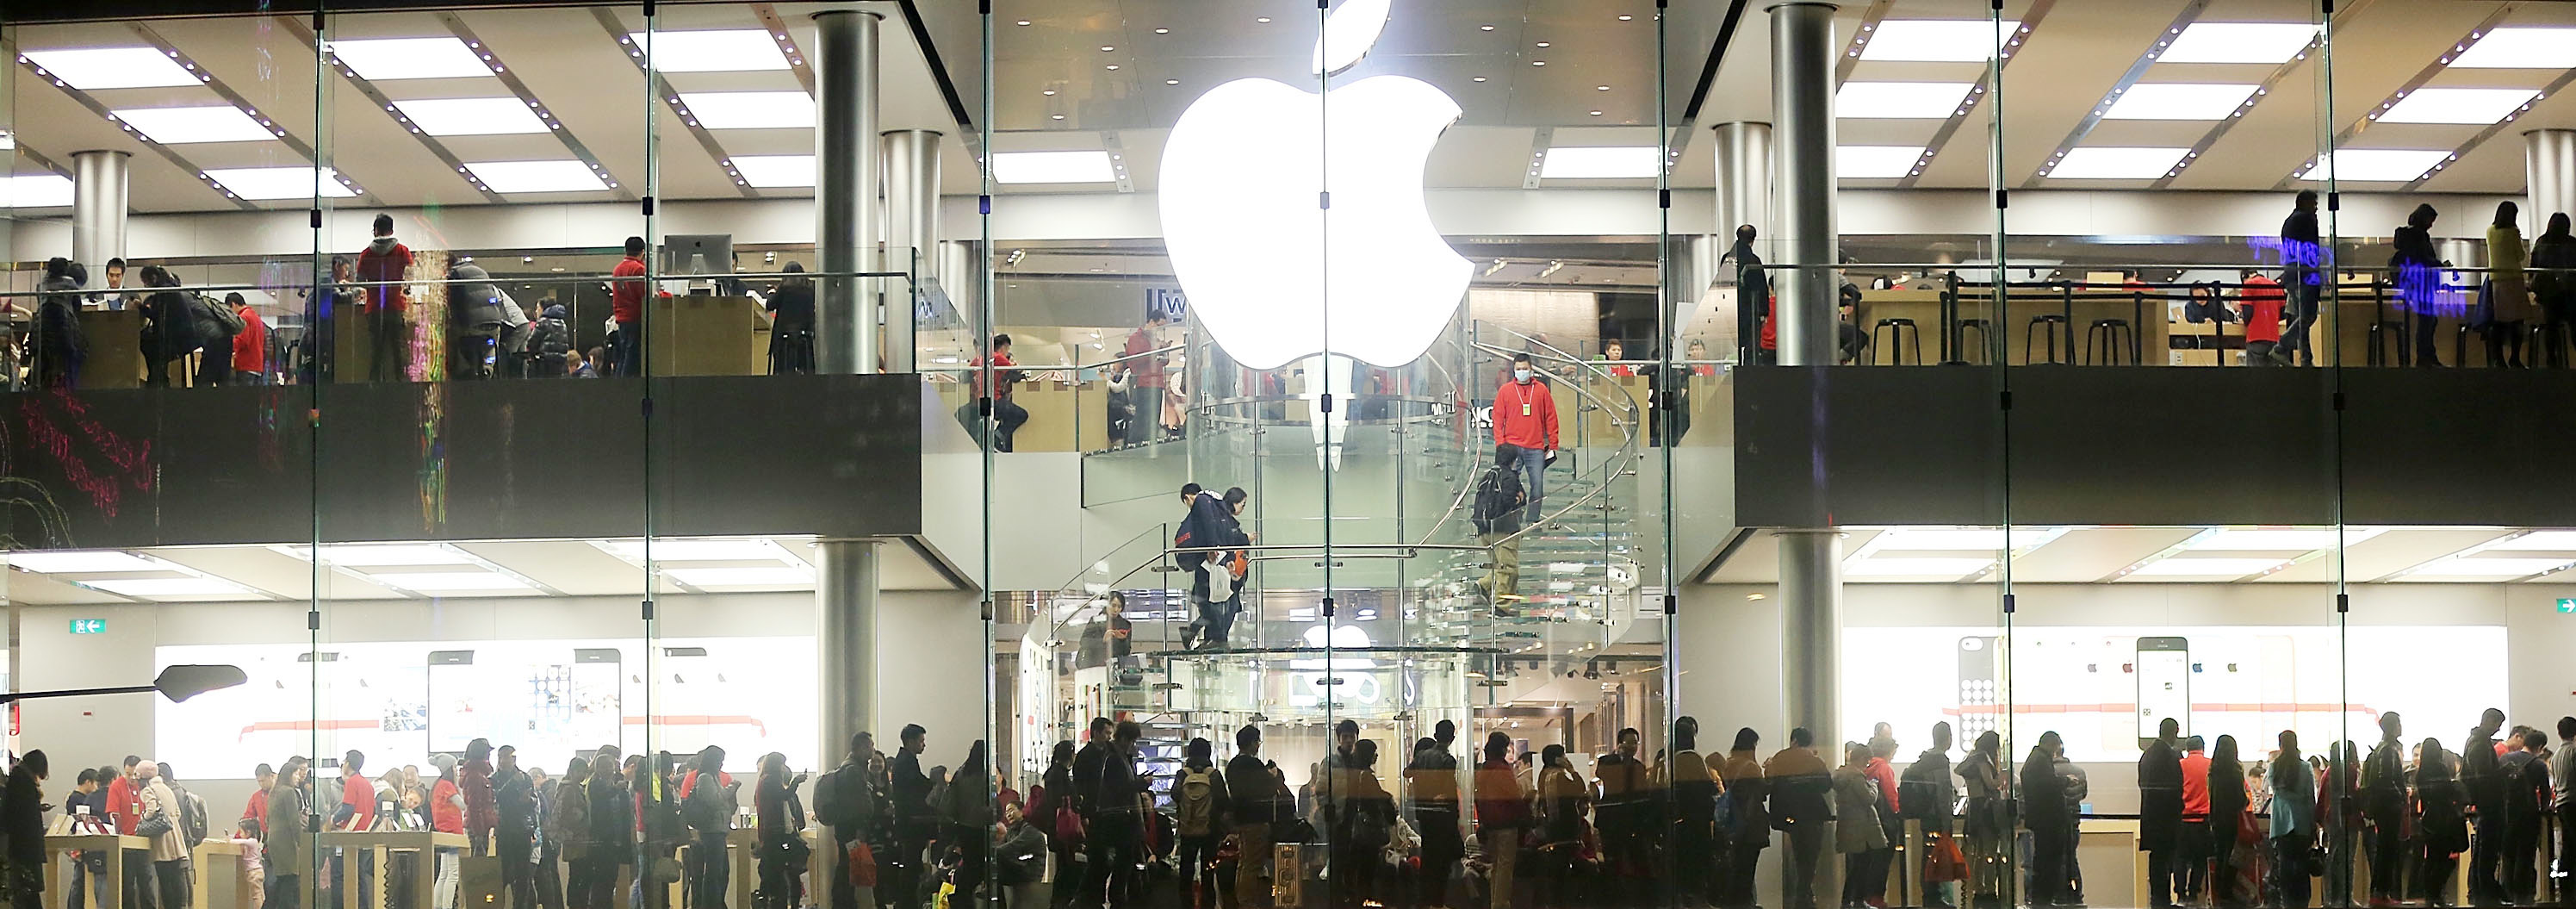 What to Expect from Apple in 2014